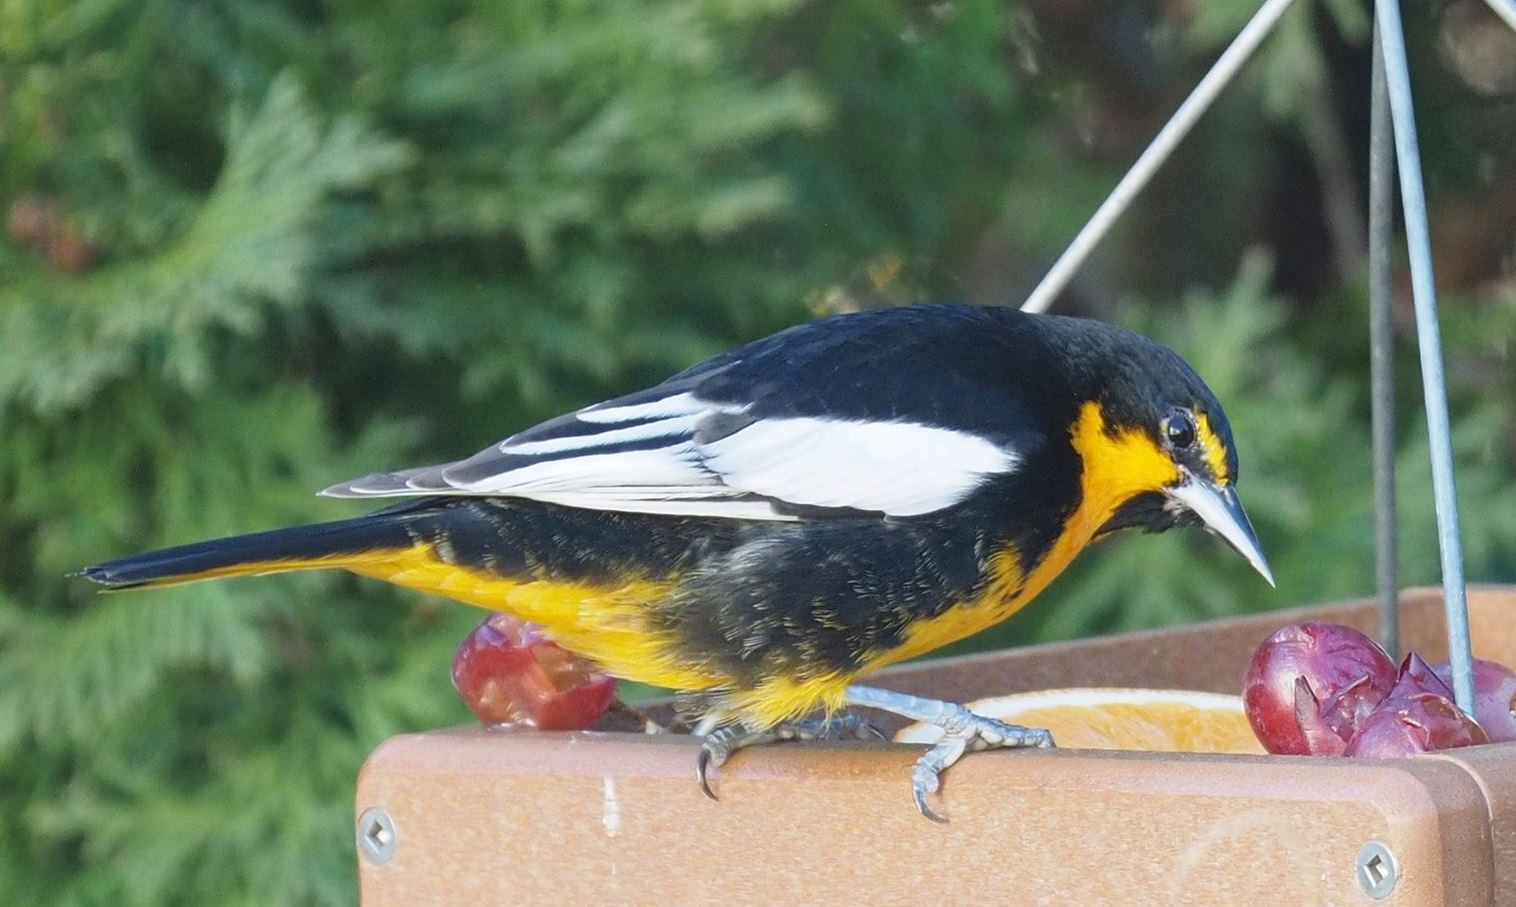 A Black-backed Oriole. Credit: Susan Schmoyer